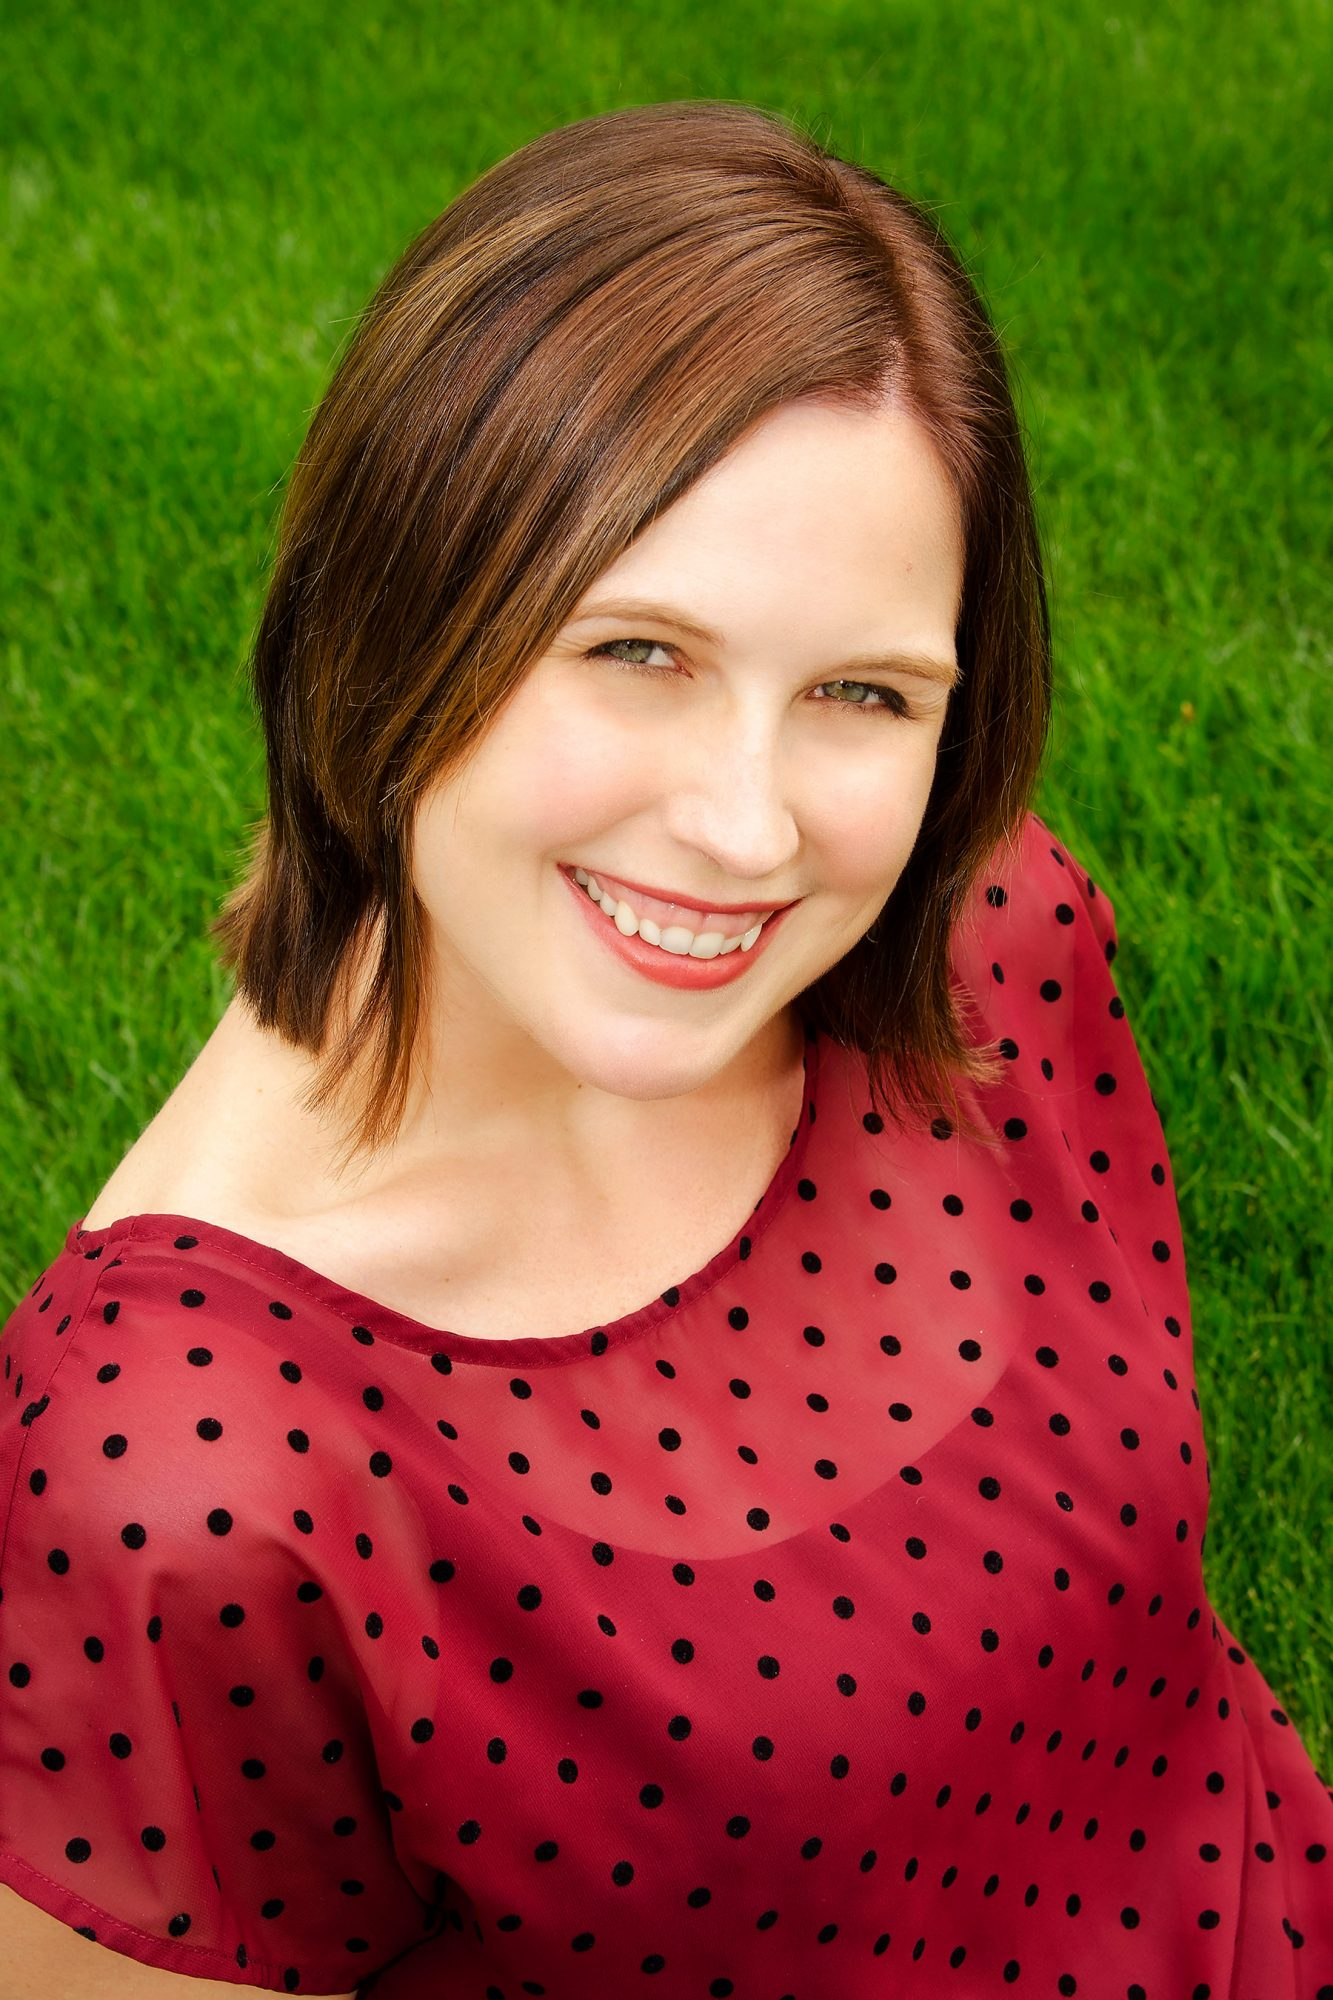 marissa-meyer-julia-scott-headshot